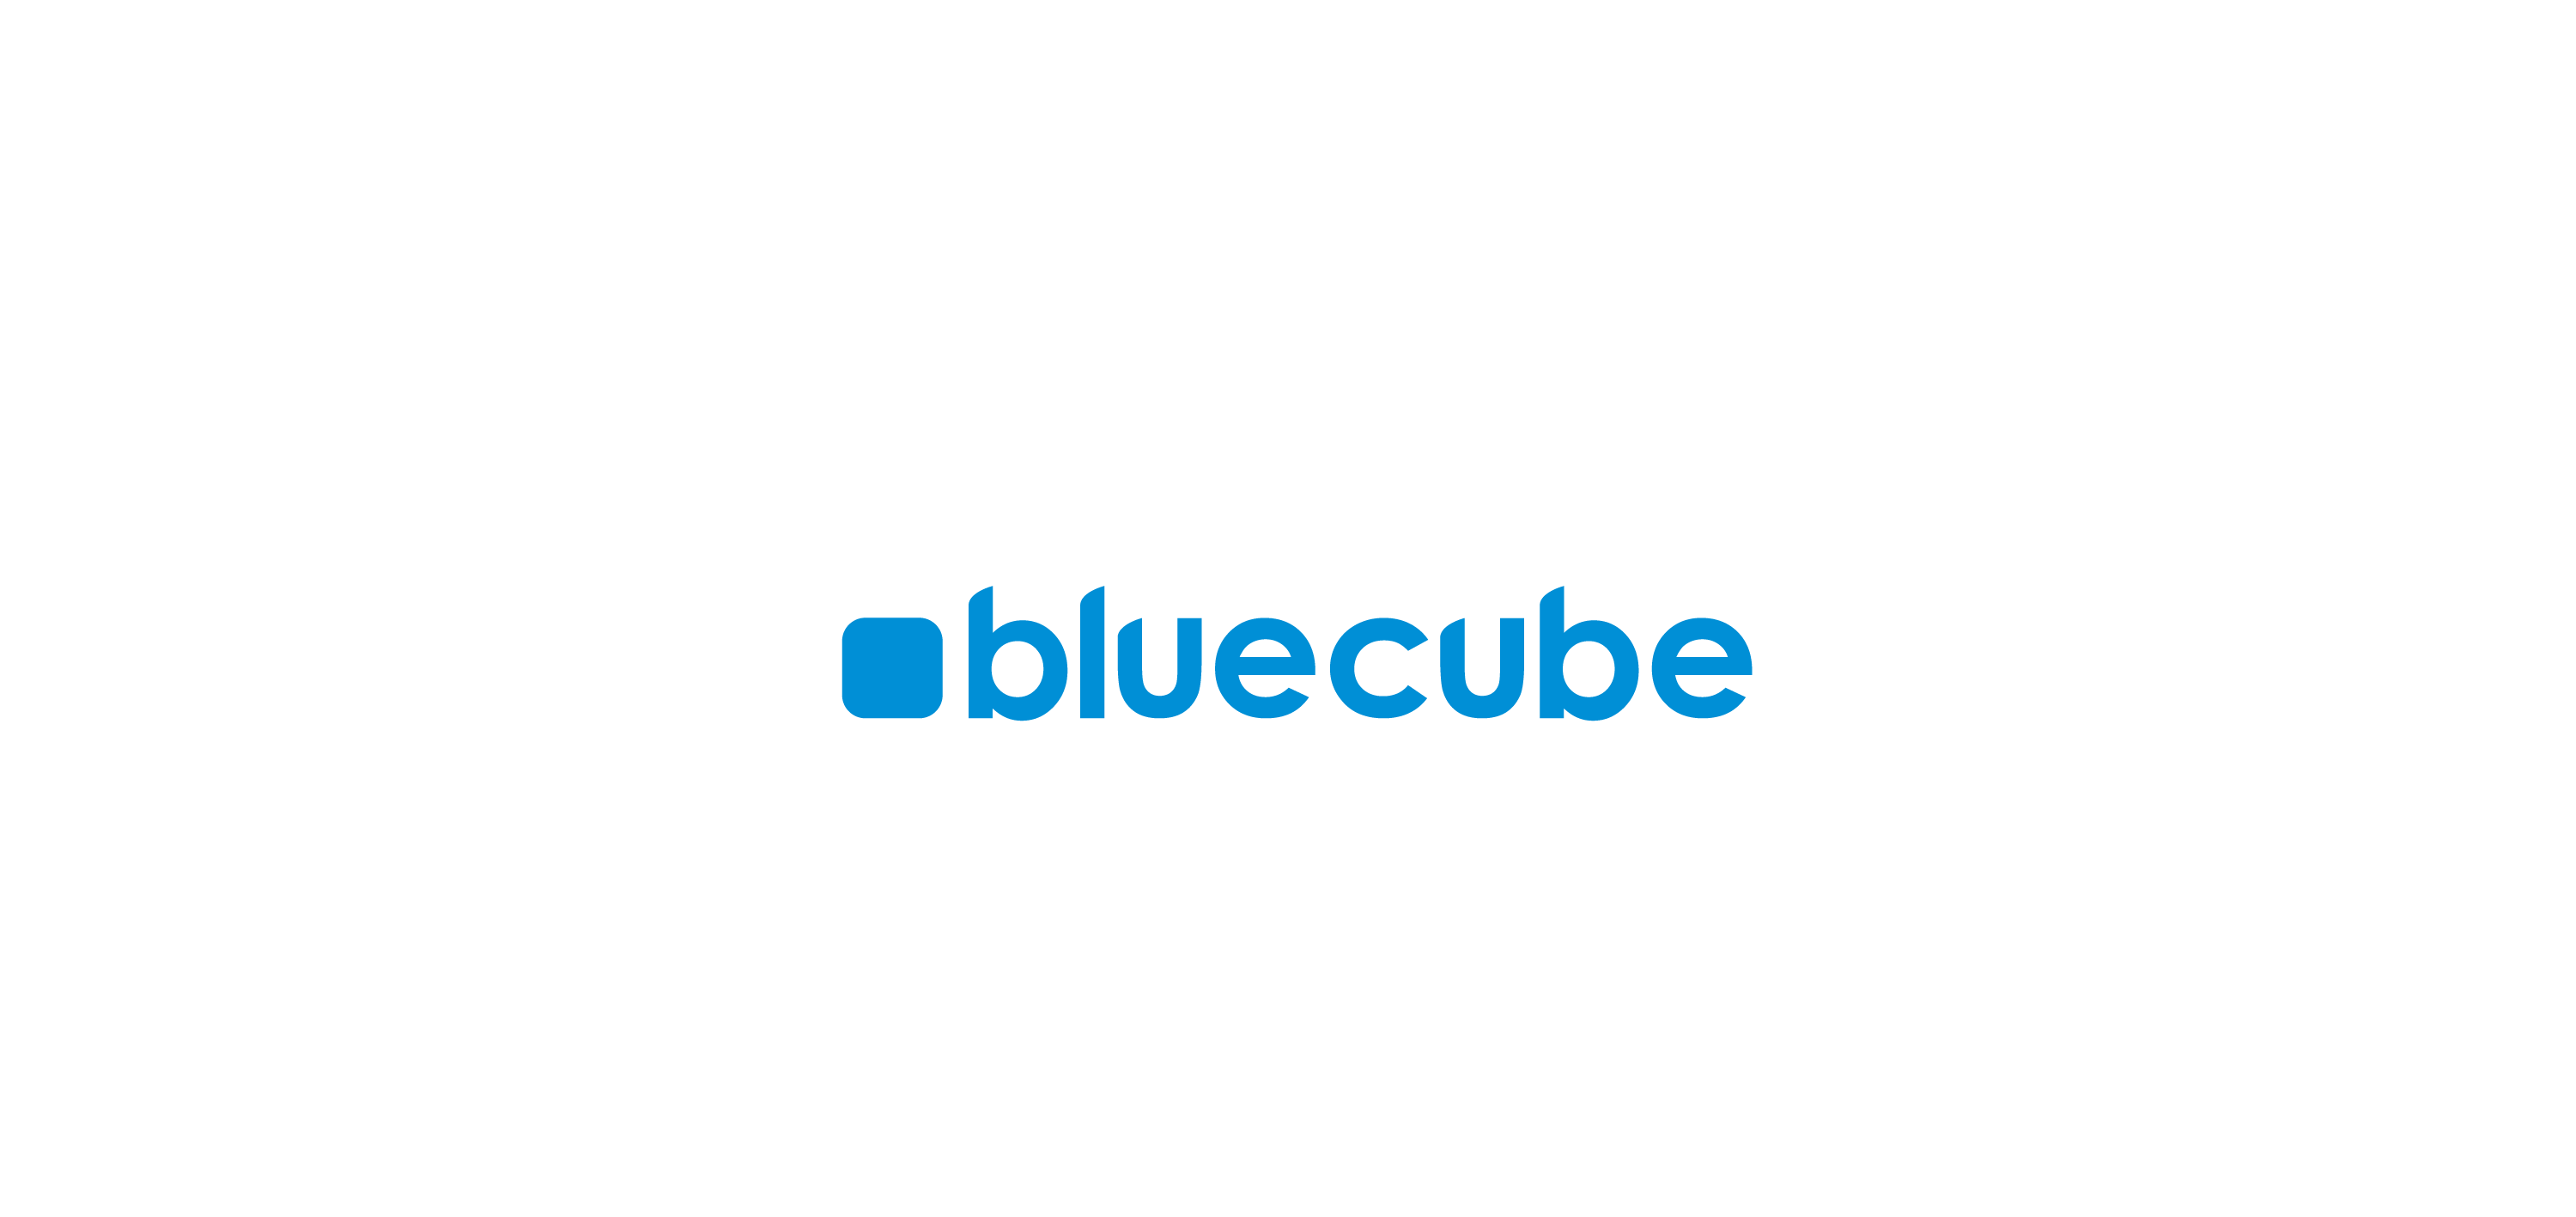 bluecube logo vector